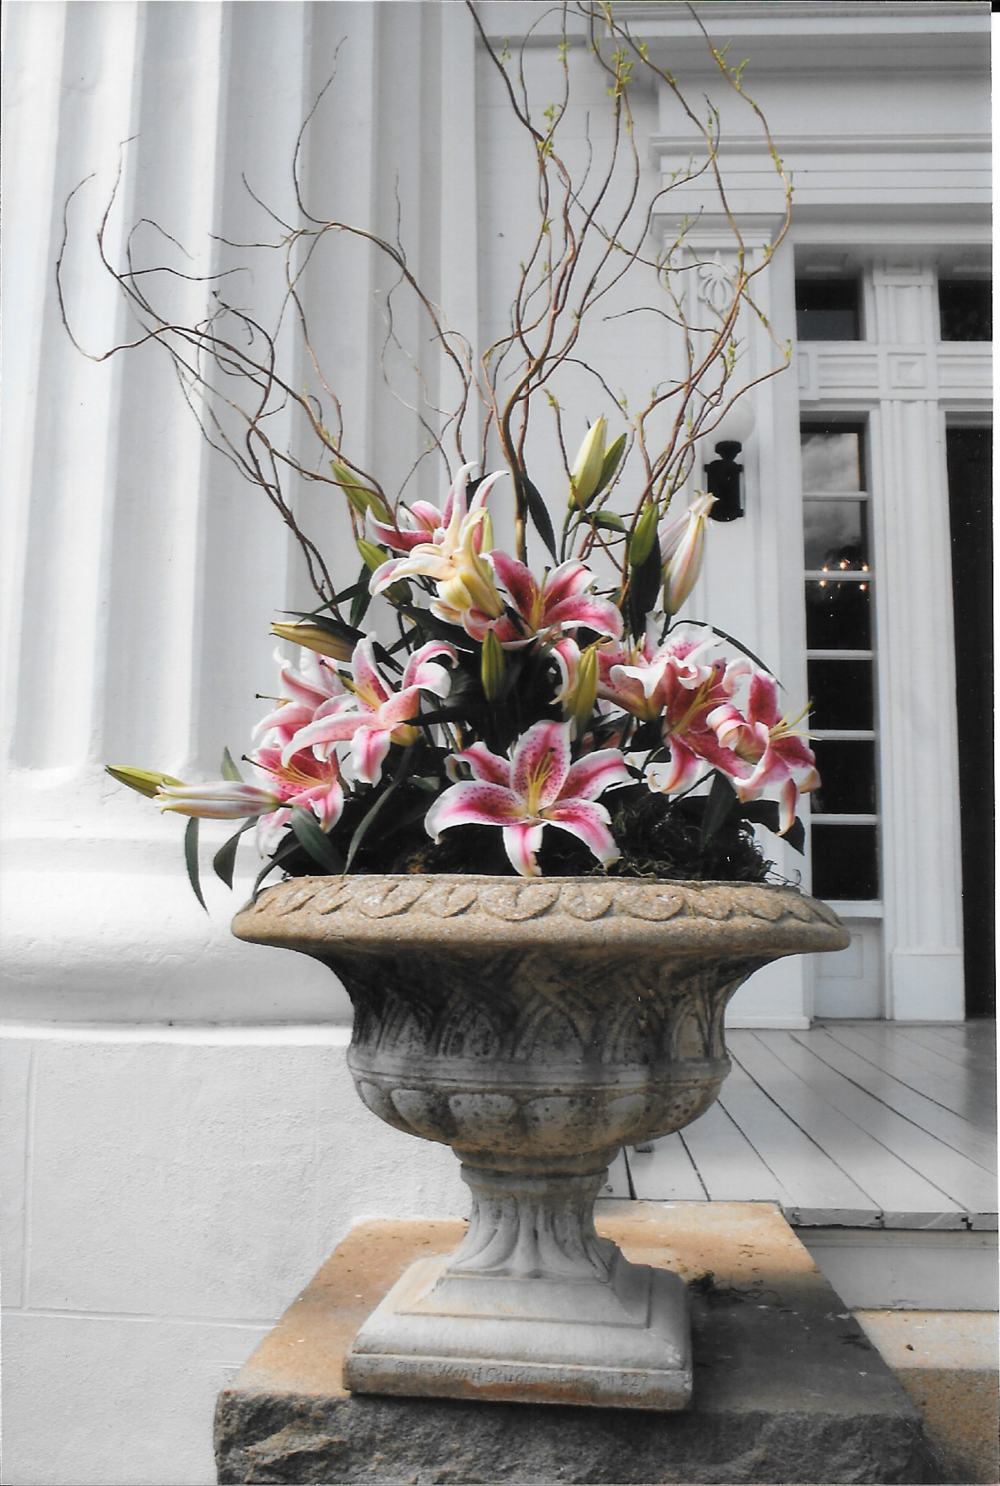 We Deliver any Arrangement to Your Front Door